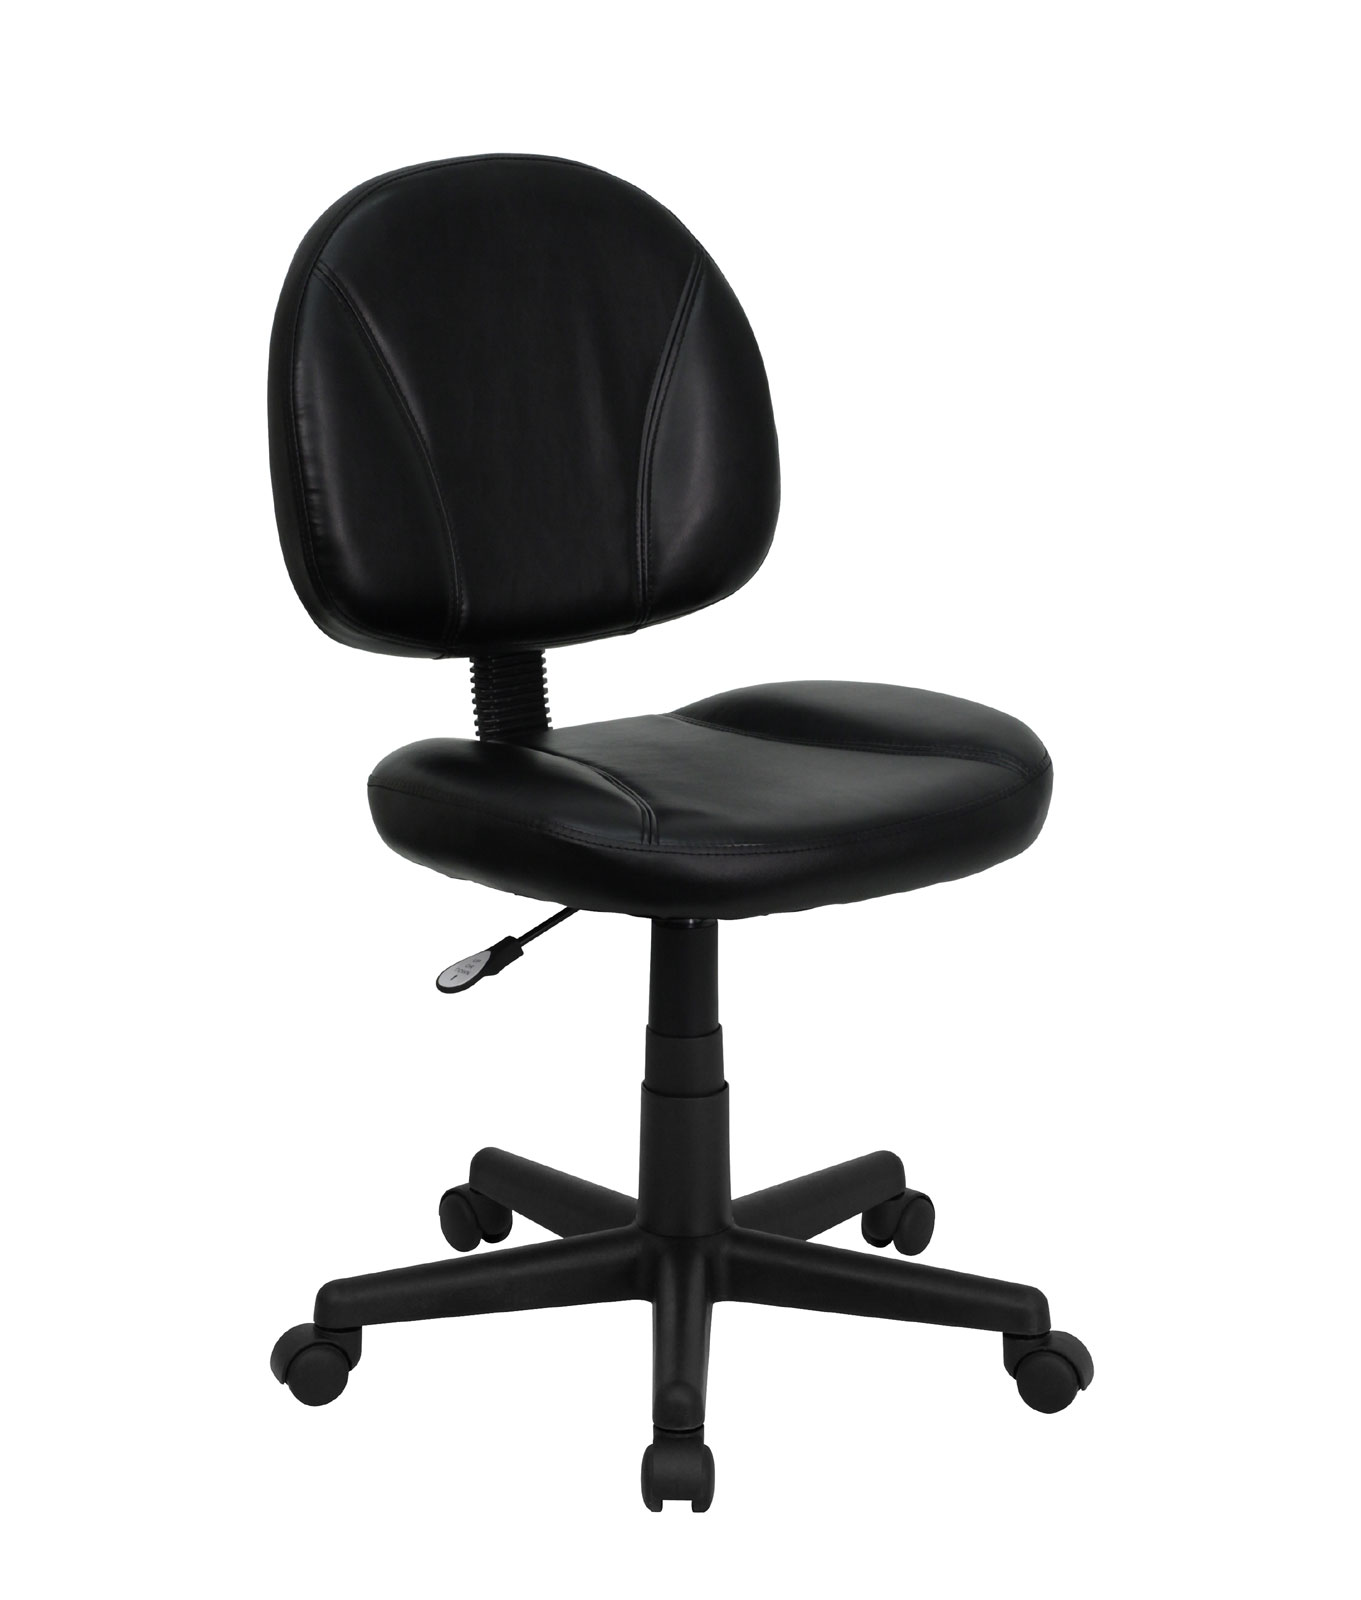 black bonded leather chair mesh office mid back ergonomic task by